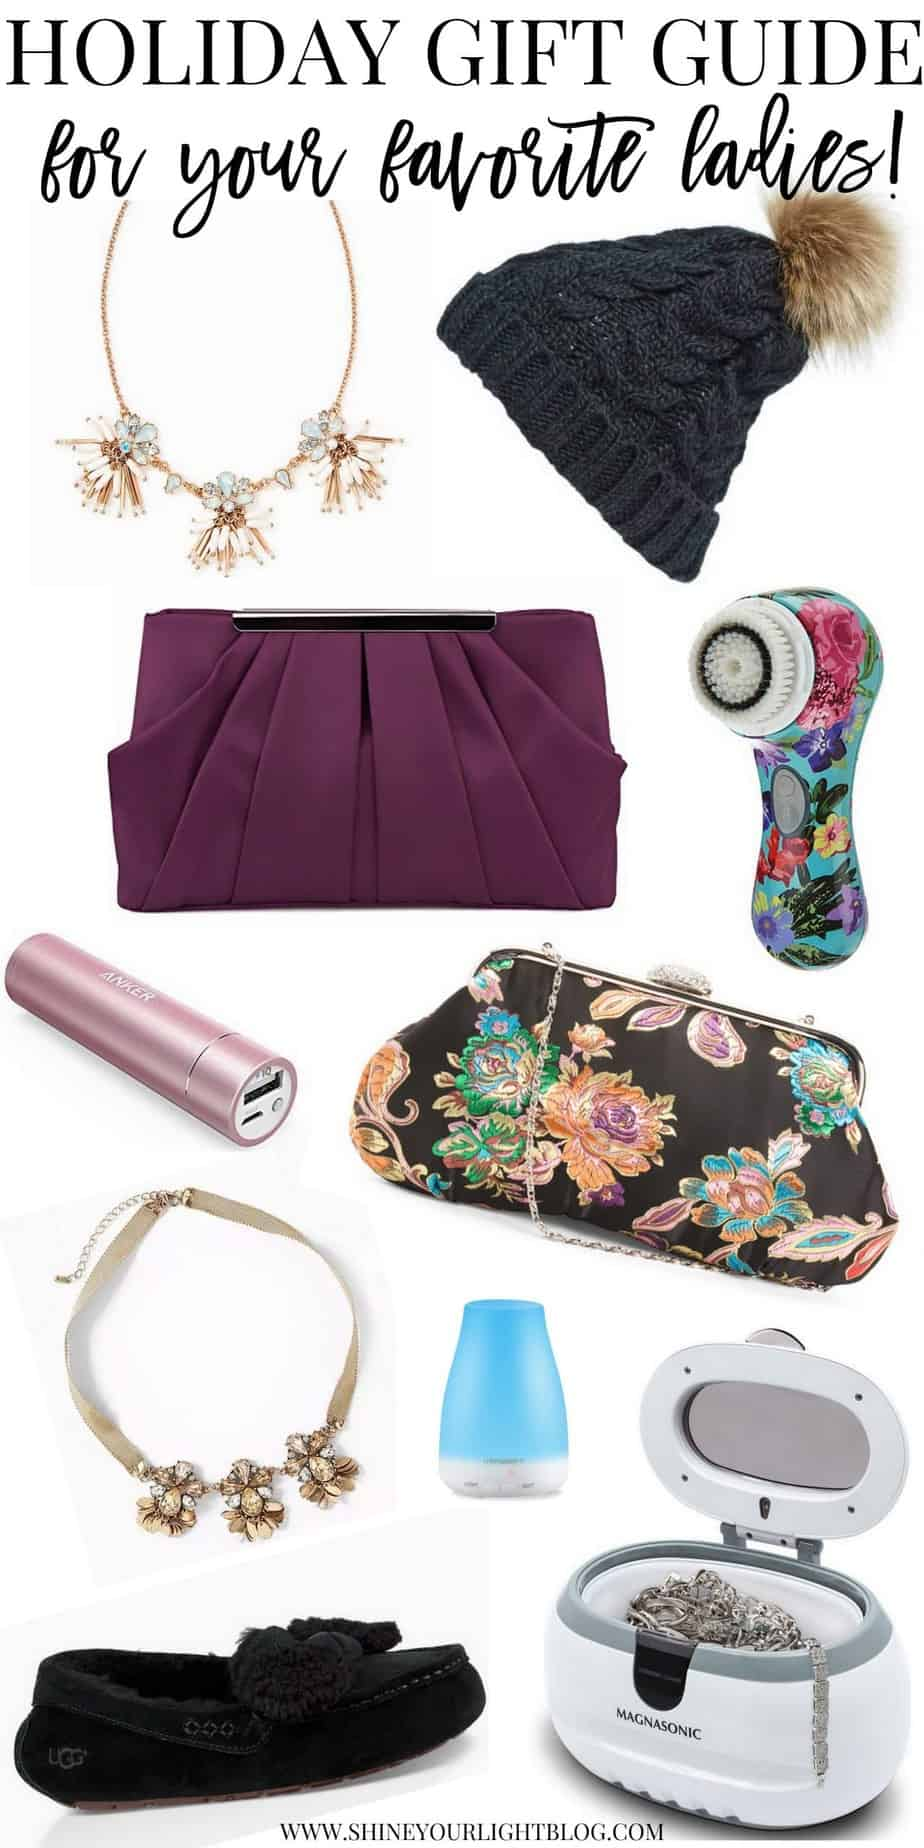 Gift guide for the ladies in your life.